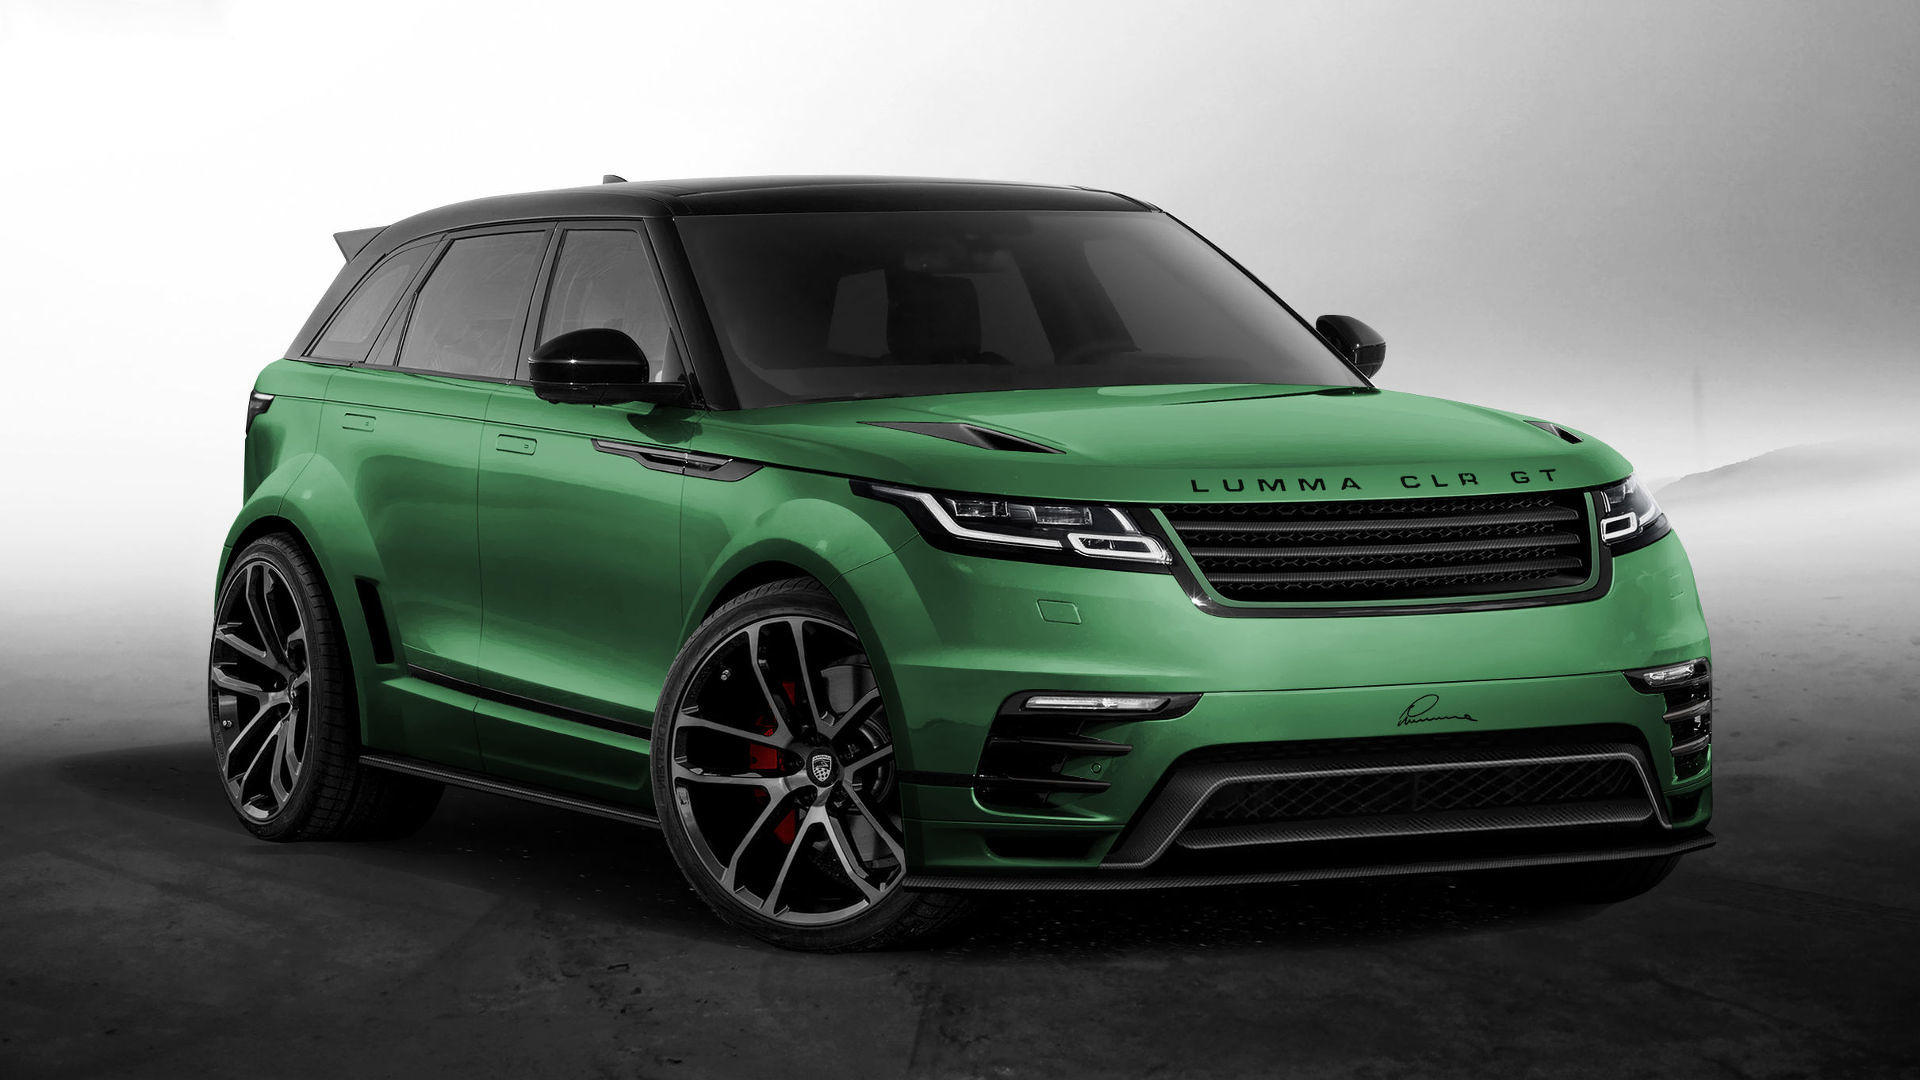 Does The Range Rover Velar Look Better With A Wide Body Kit